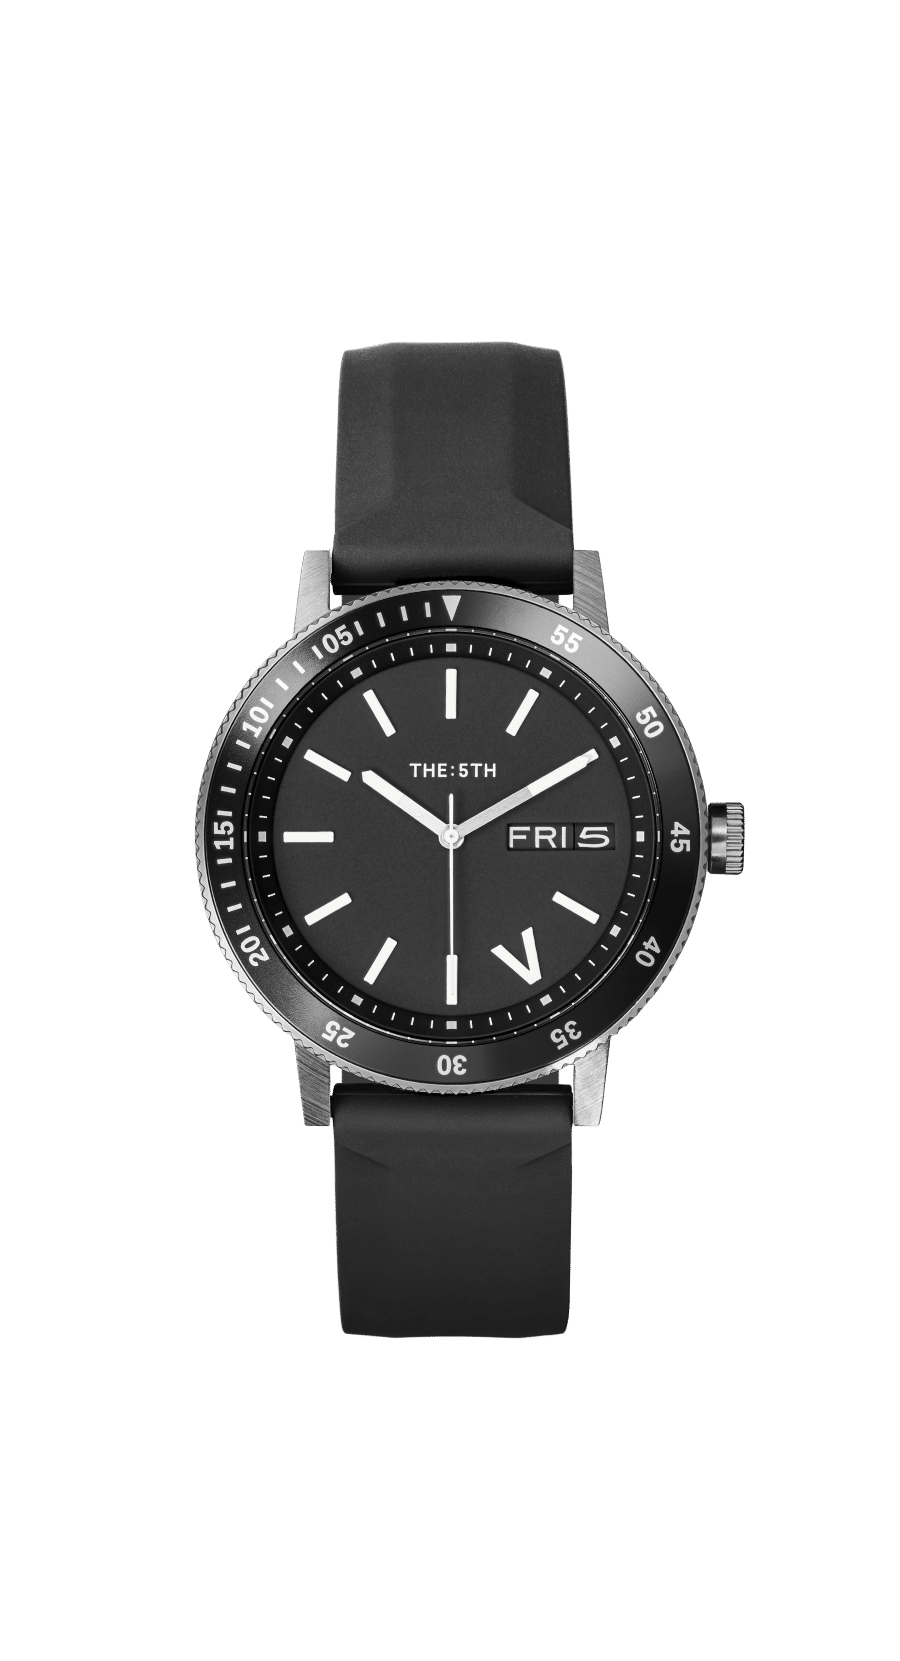 the 5th watch black leather strap